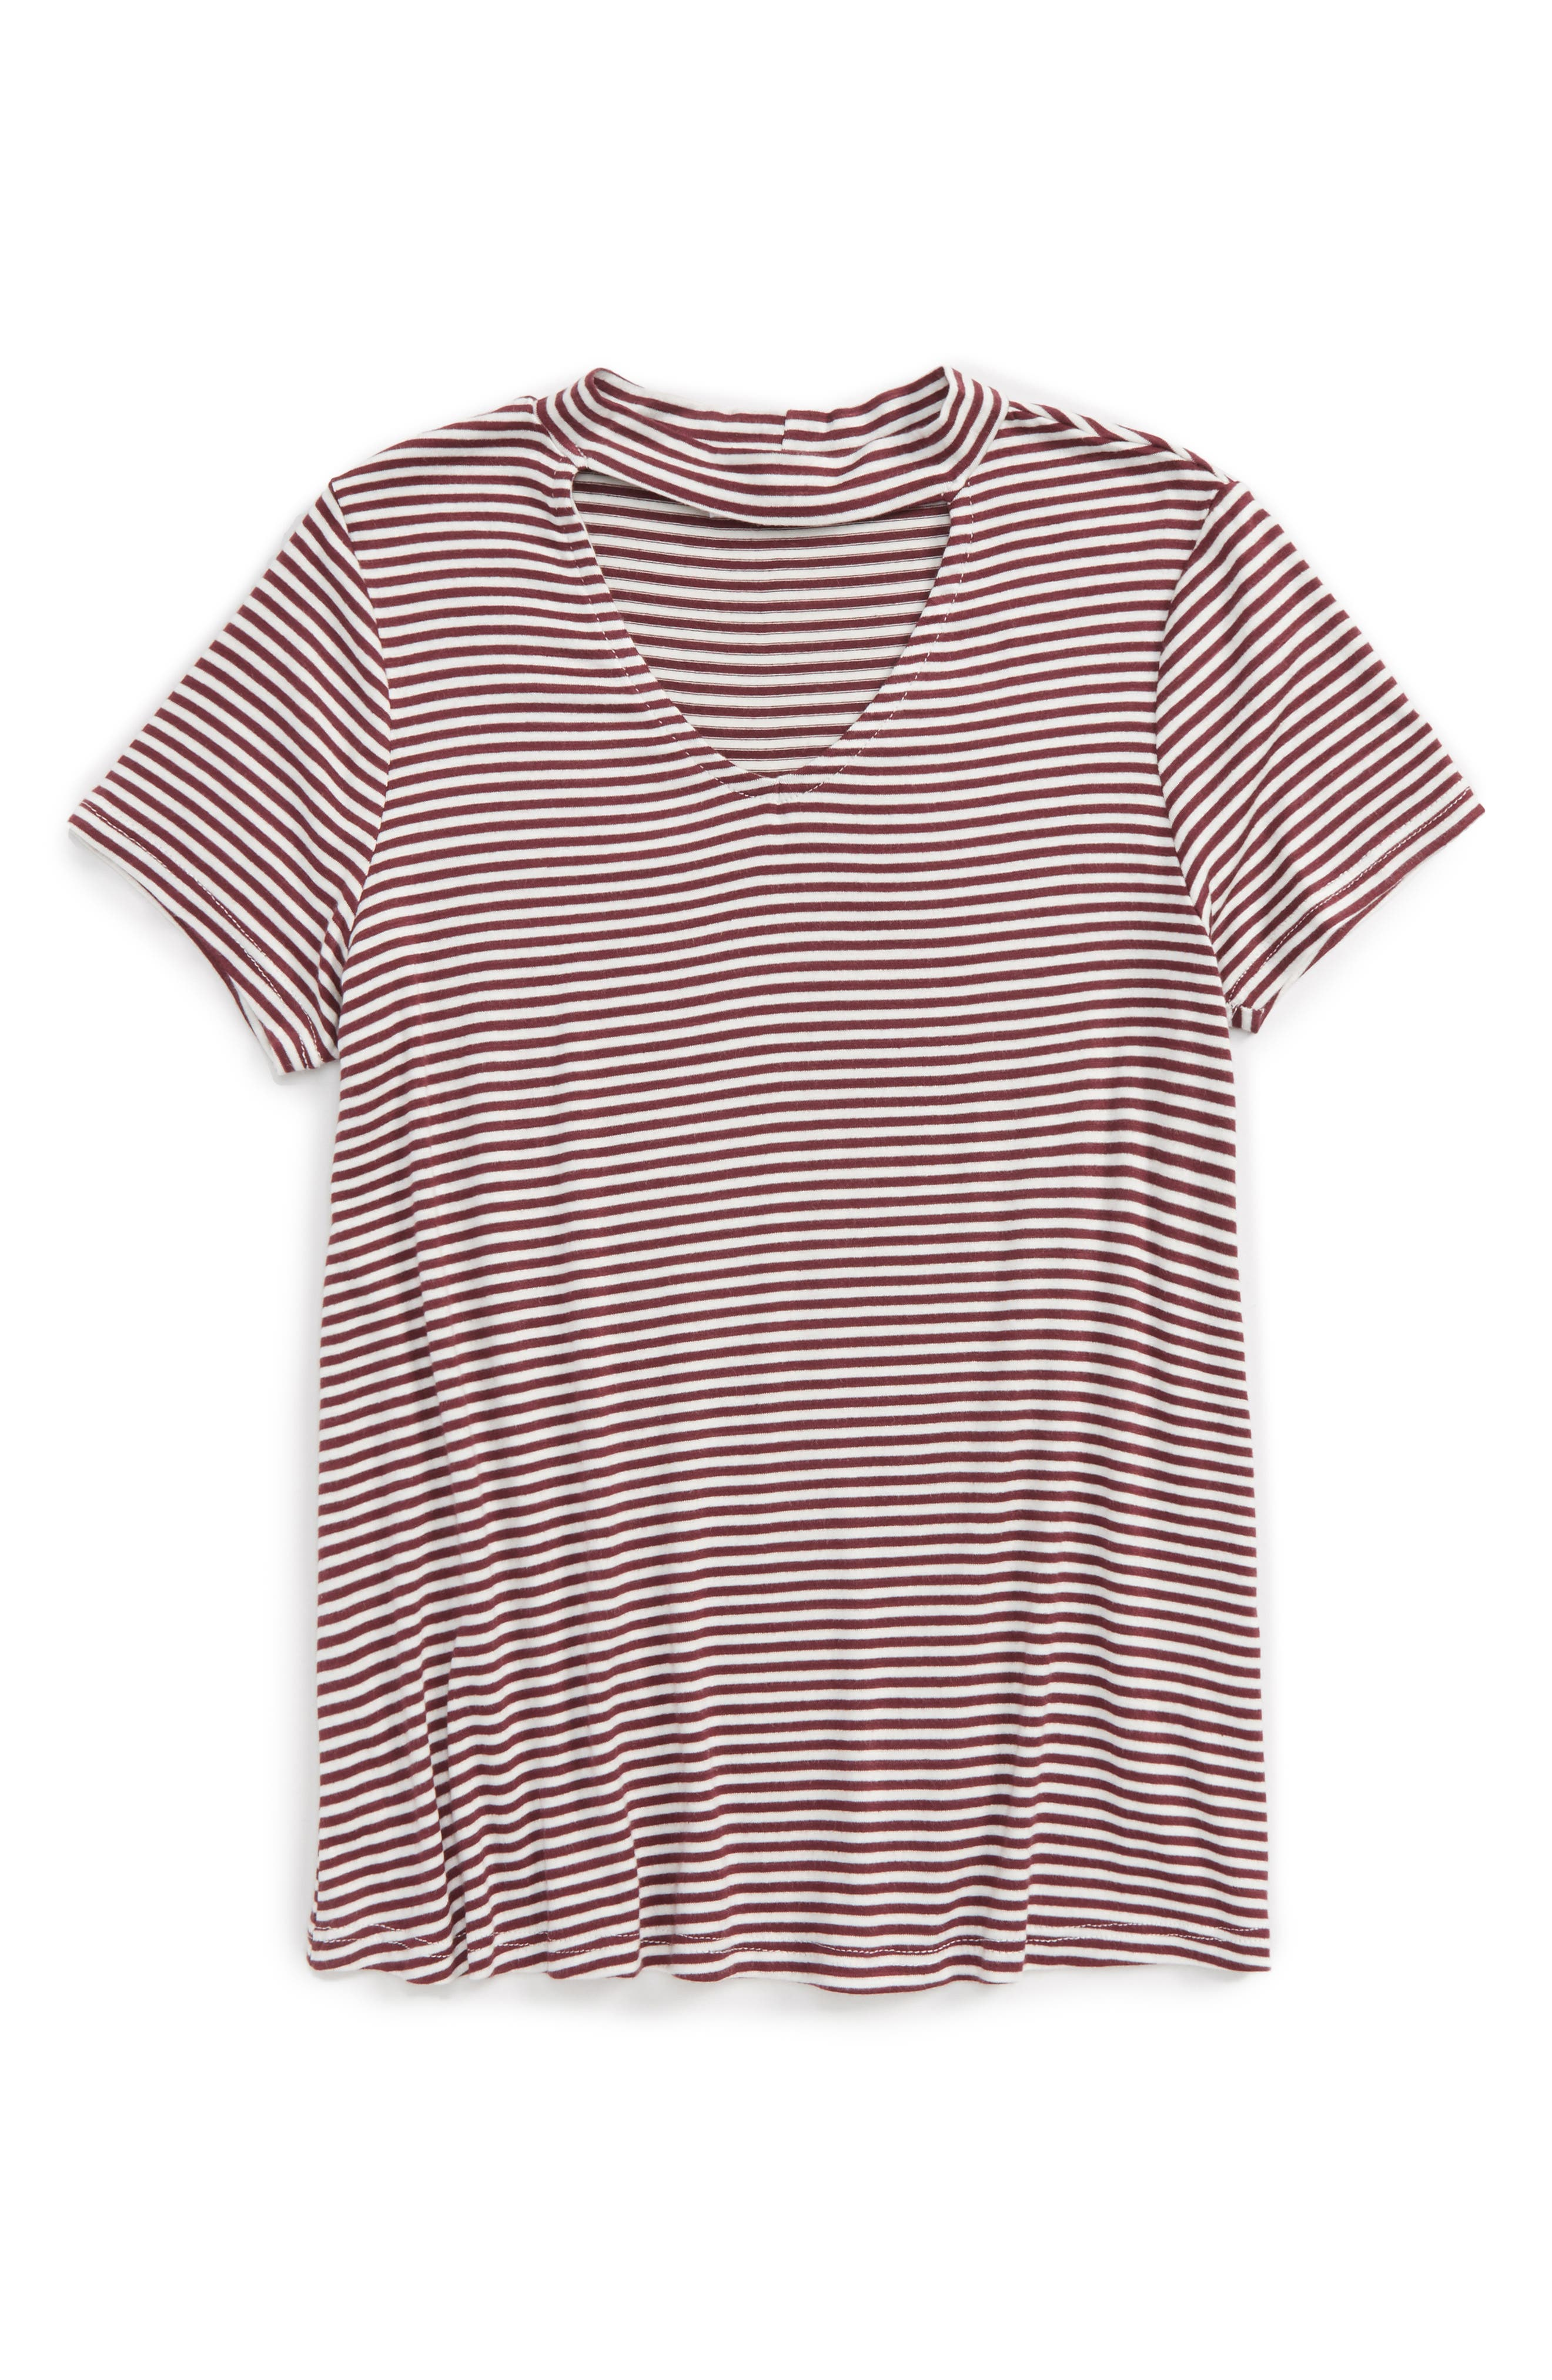 TEN SIXTY SHERMAN Gigi Cutout Tee